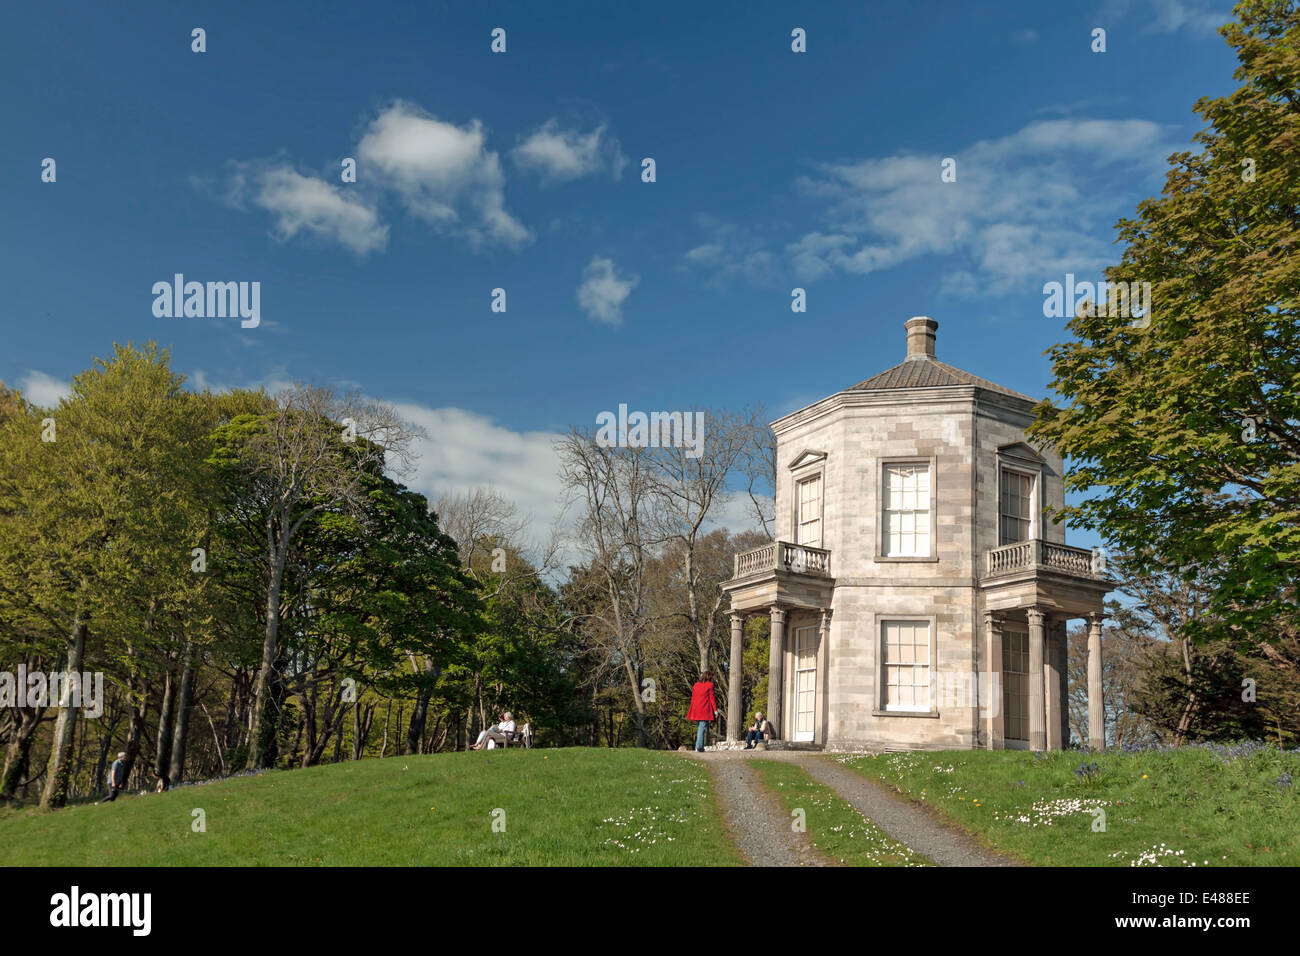 View on the Temple of the Winds, Newtownards, County Down, Northern Ireland, United Kingdom. - Stock Image